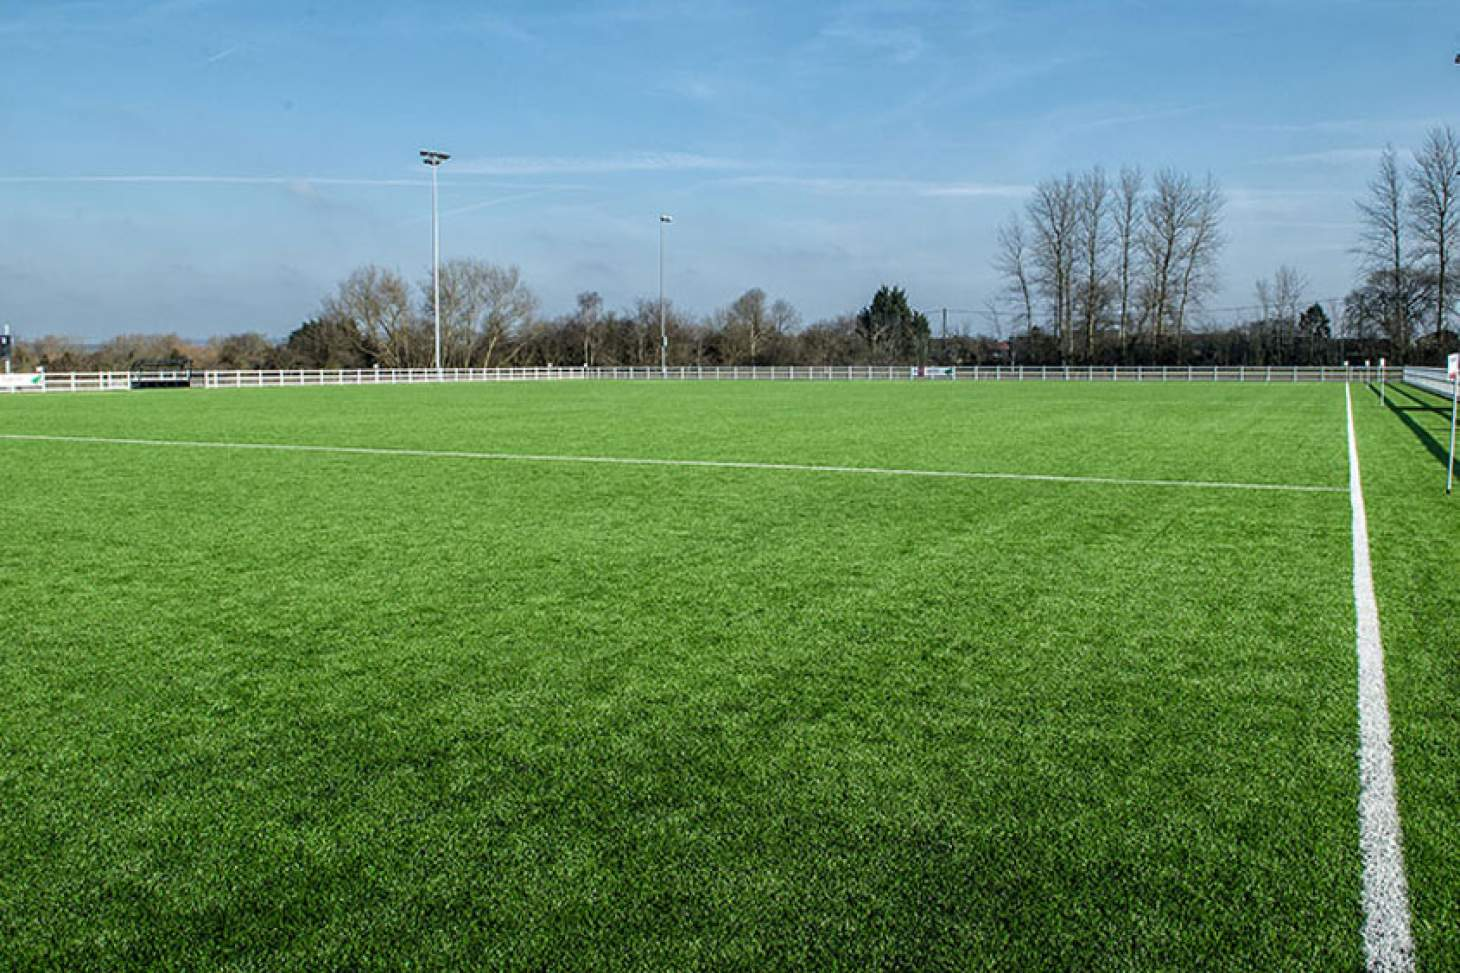 PlayFootball Leicester 5 a side | 3G Astroturf football pitch